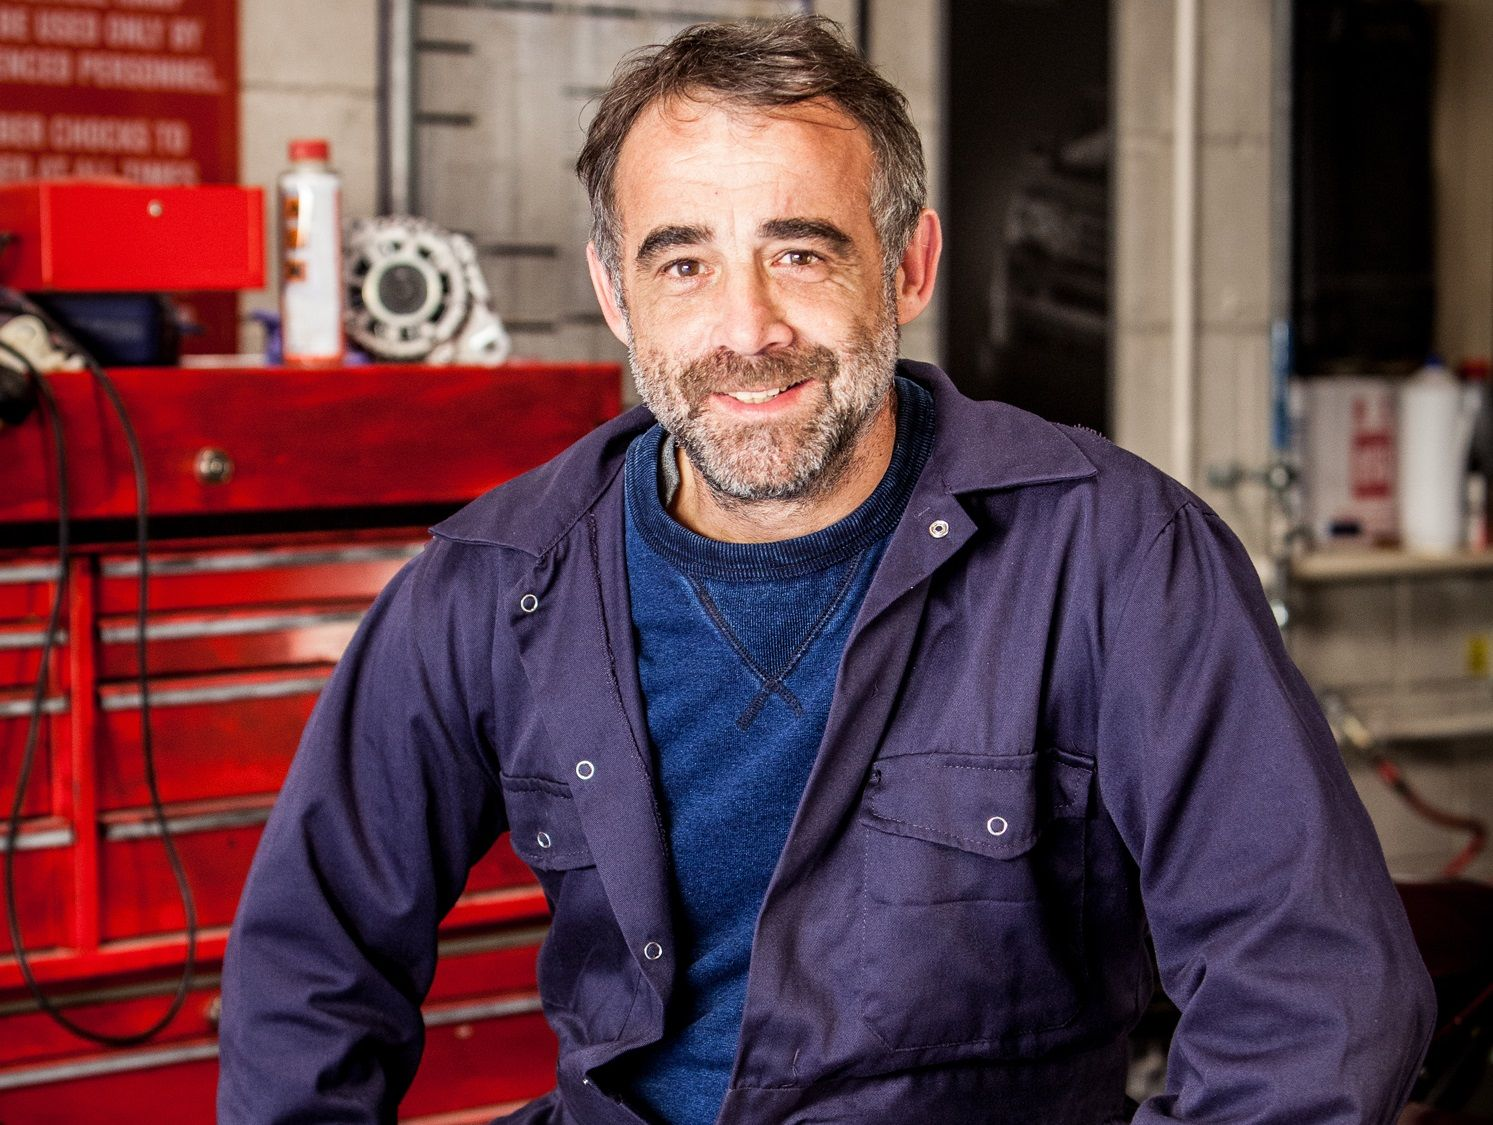 Coronation Street's Kevin Webster to face blackmail drama as Ray Crosby gets worse